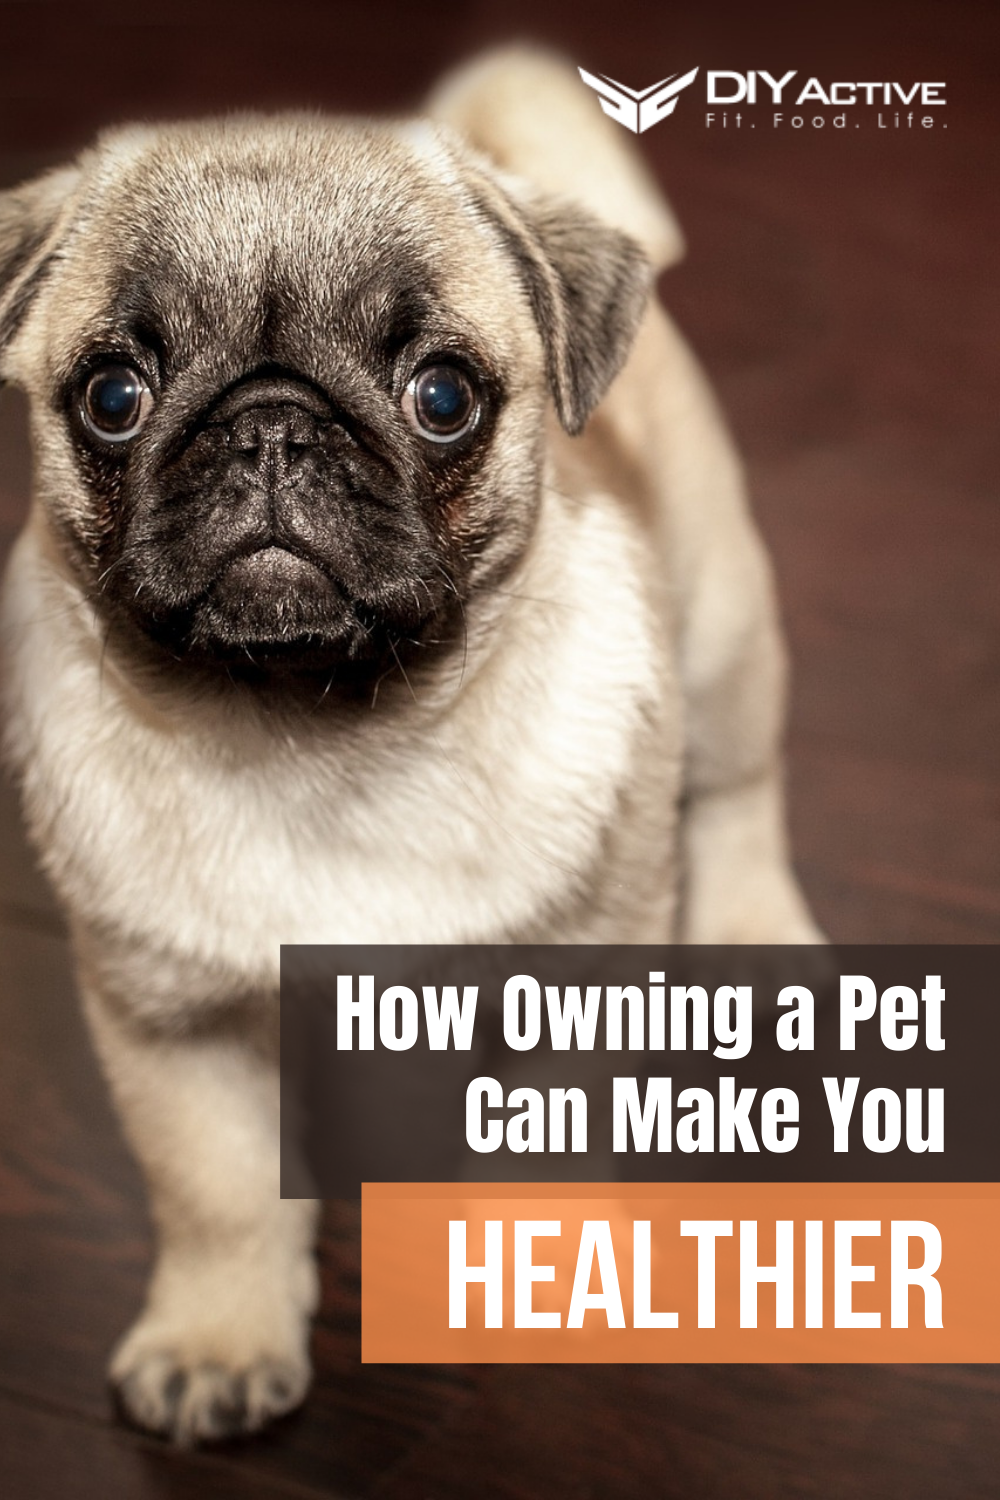 How Owning a Pet Can Make You Healthier